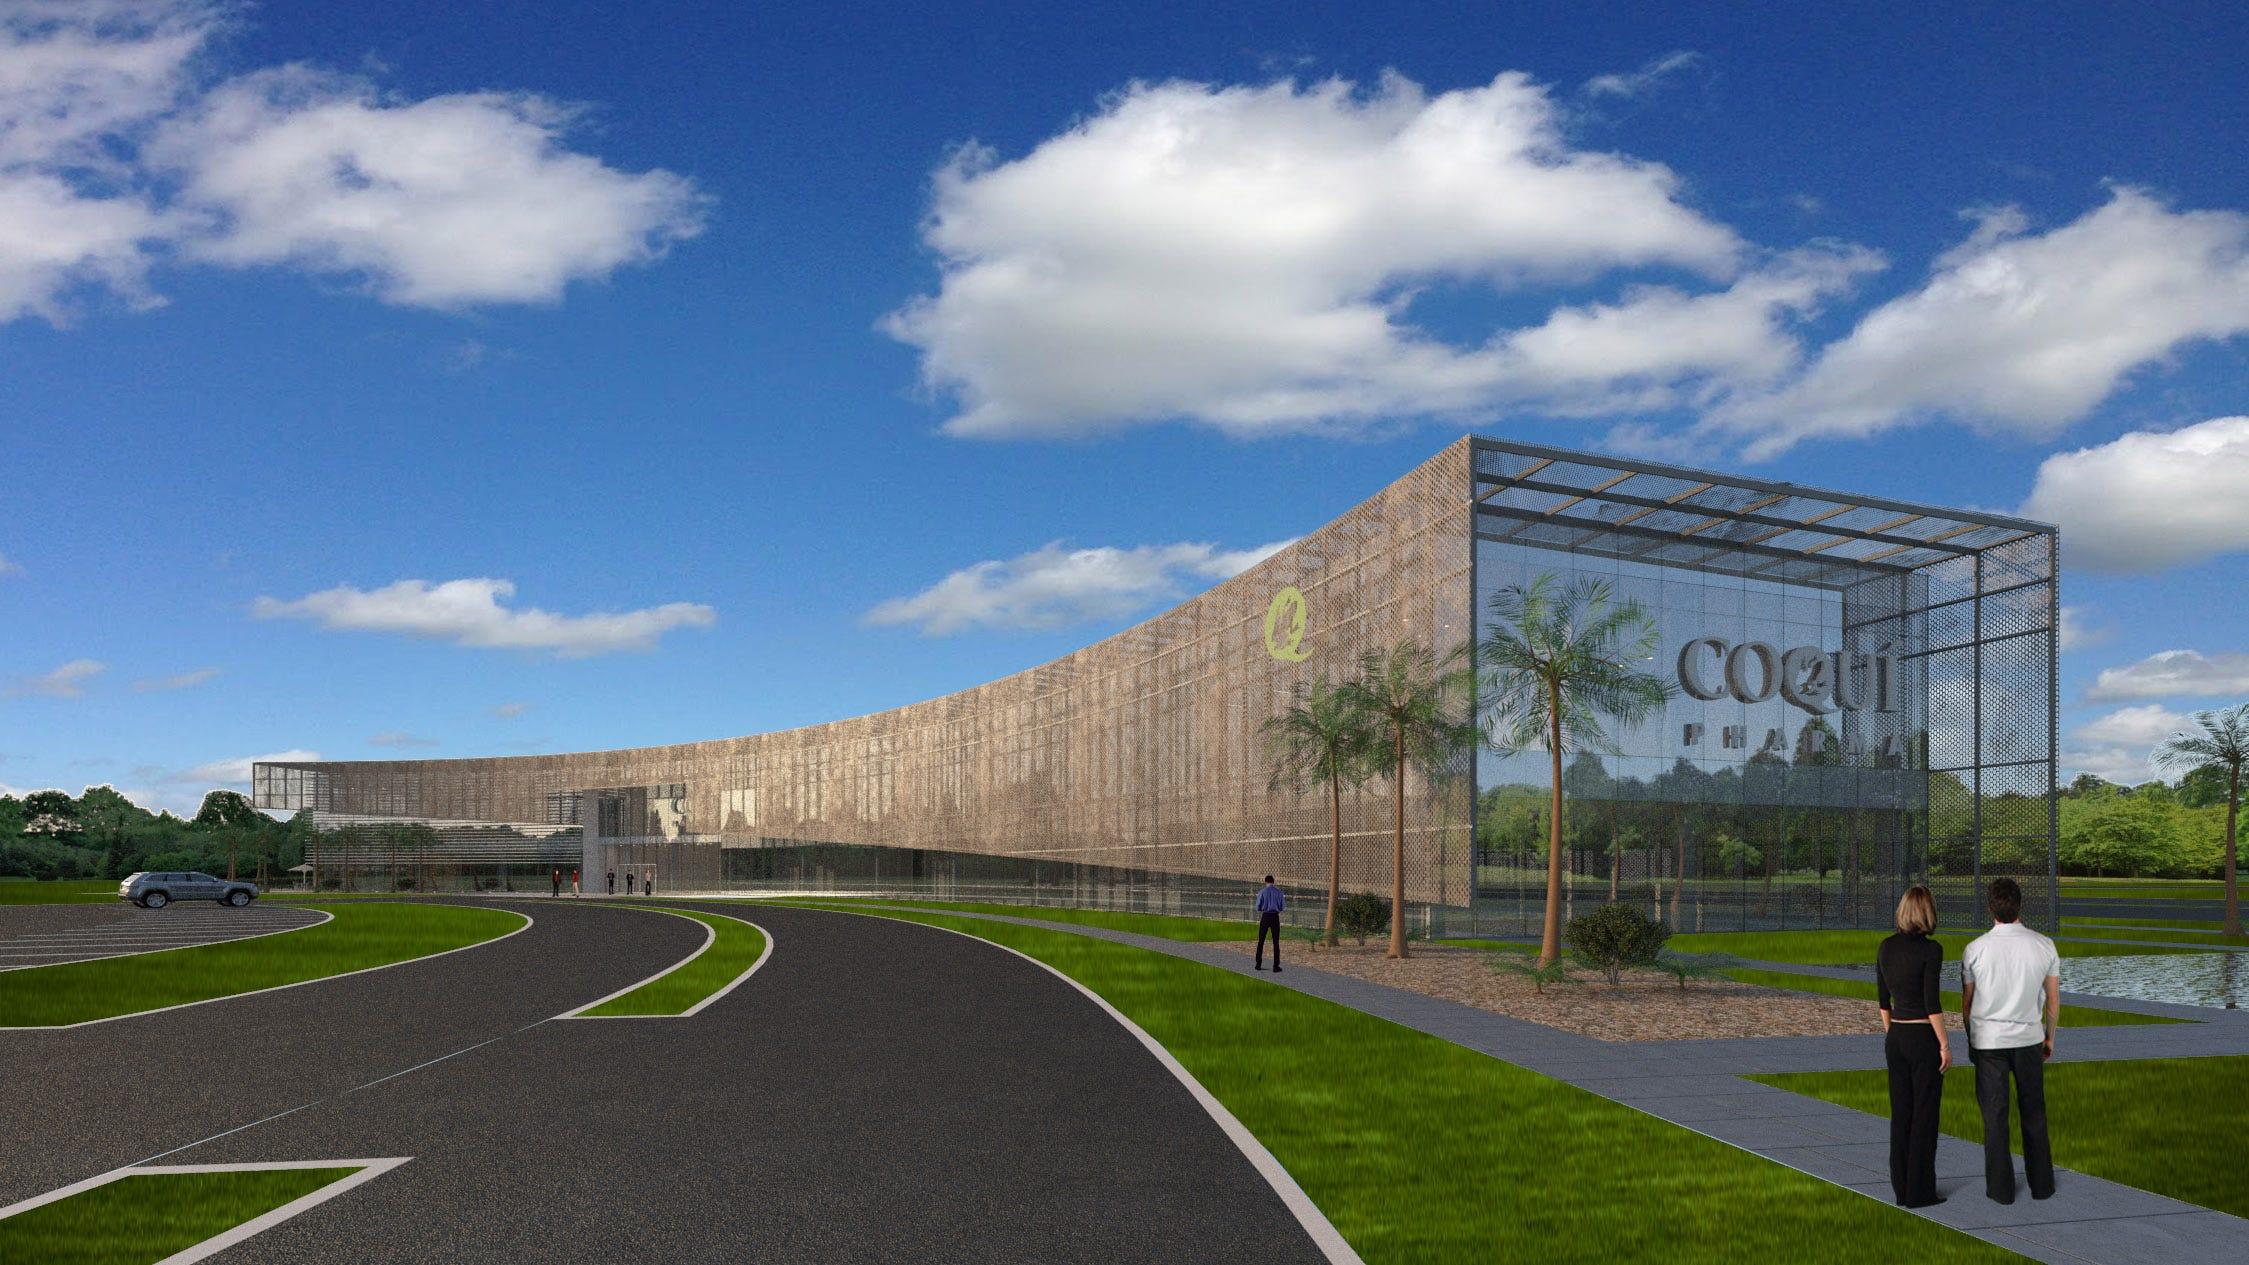 Coquí Radio Pharmaceuticals plans to build a first-of-its-kind medical isotope production facility in Oak Ridge to solve the United States' molybdenum-99 shortage.